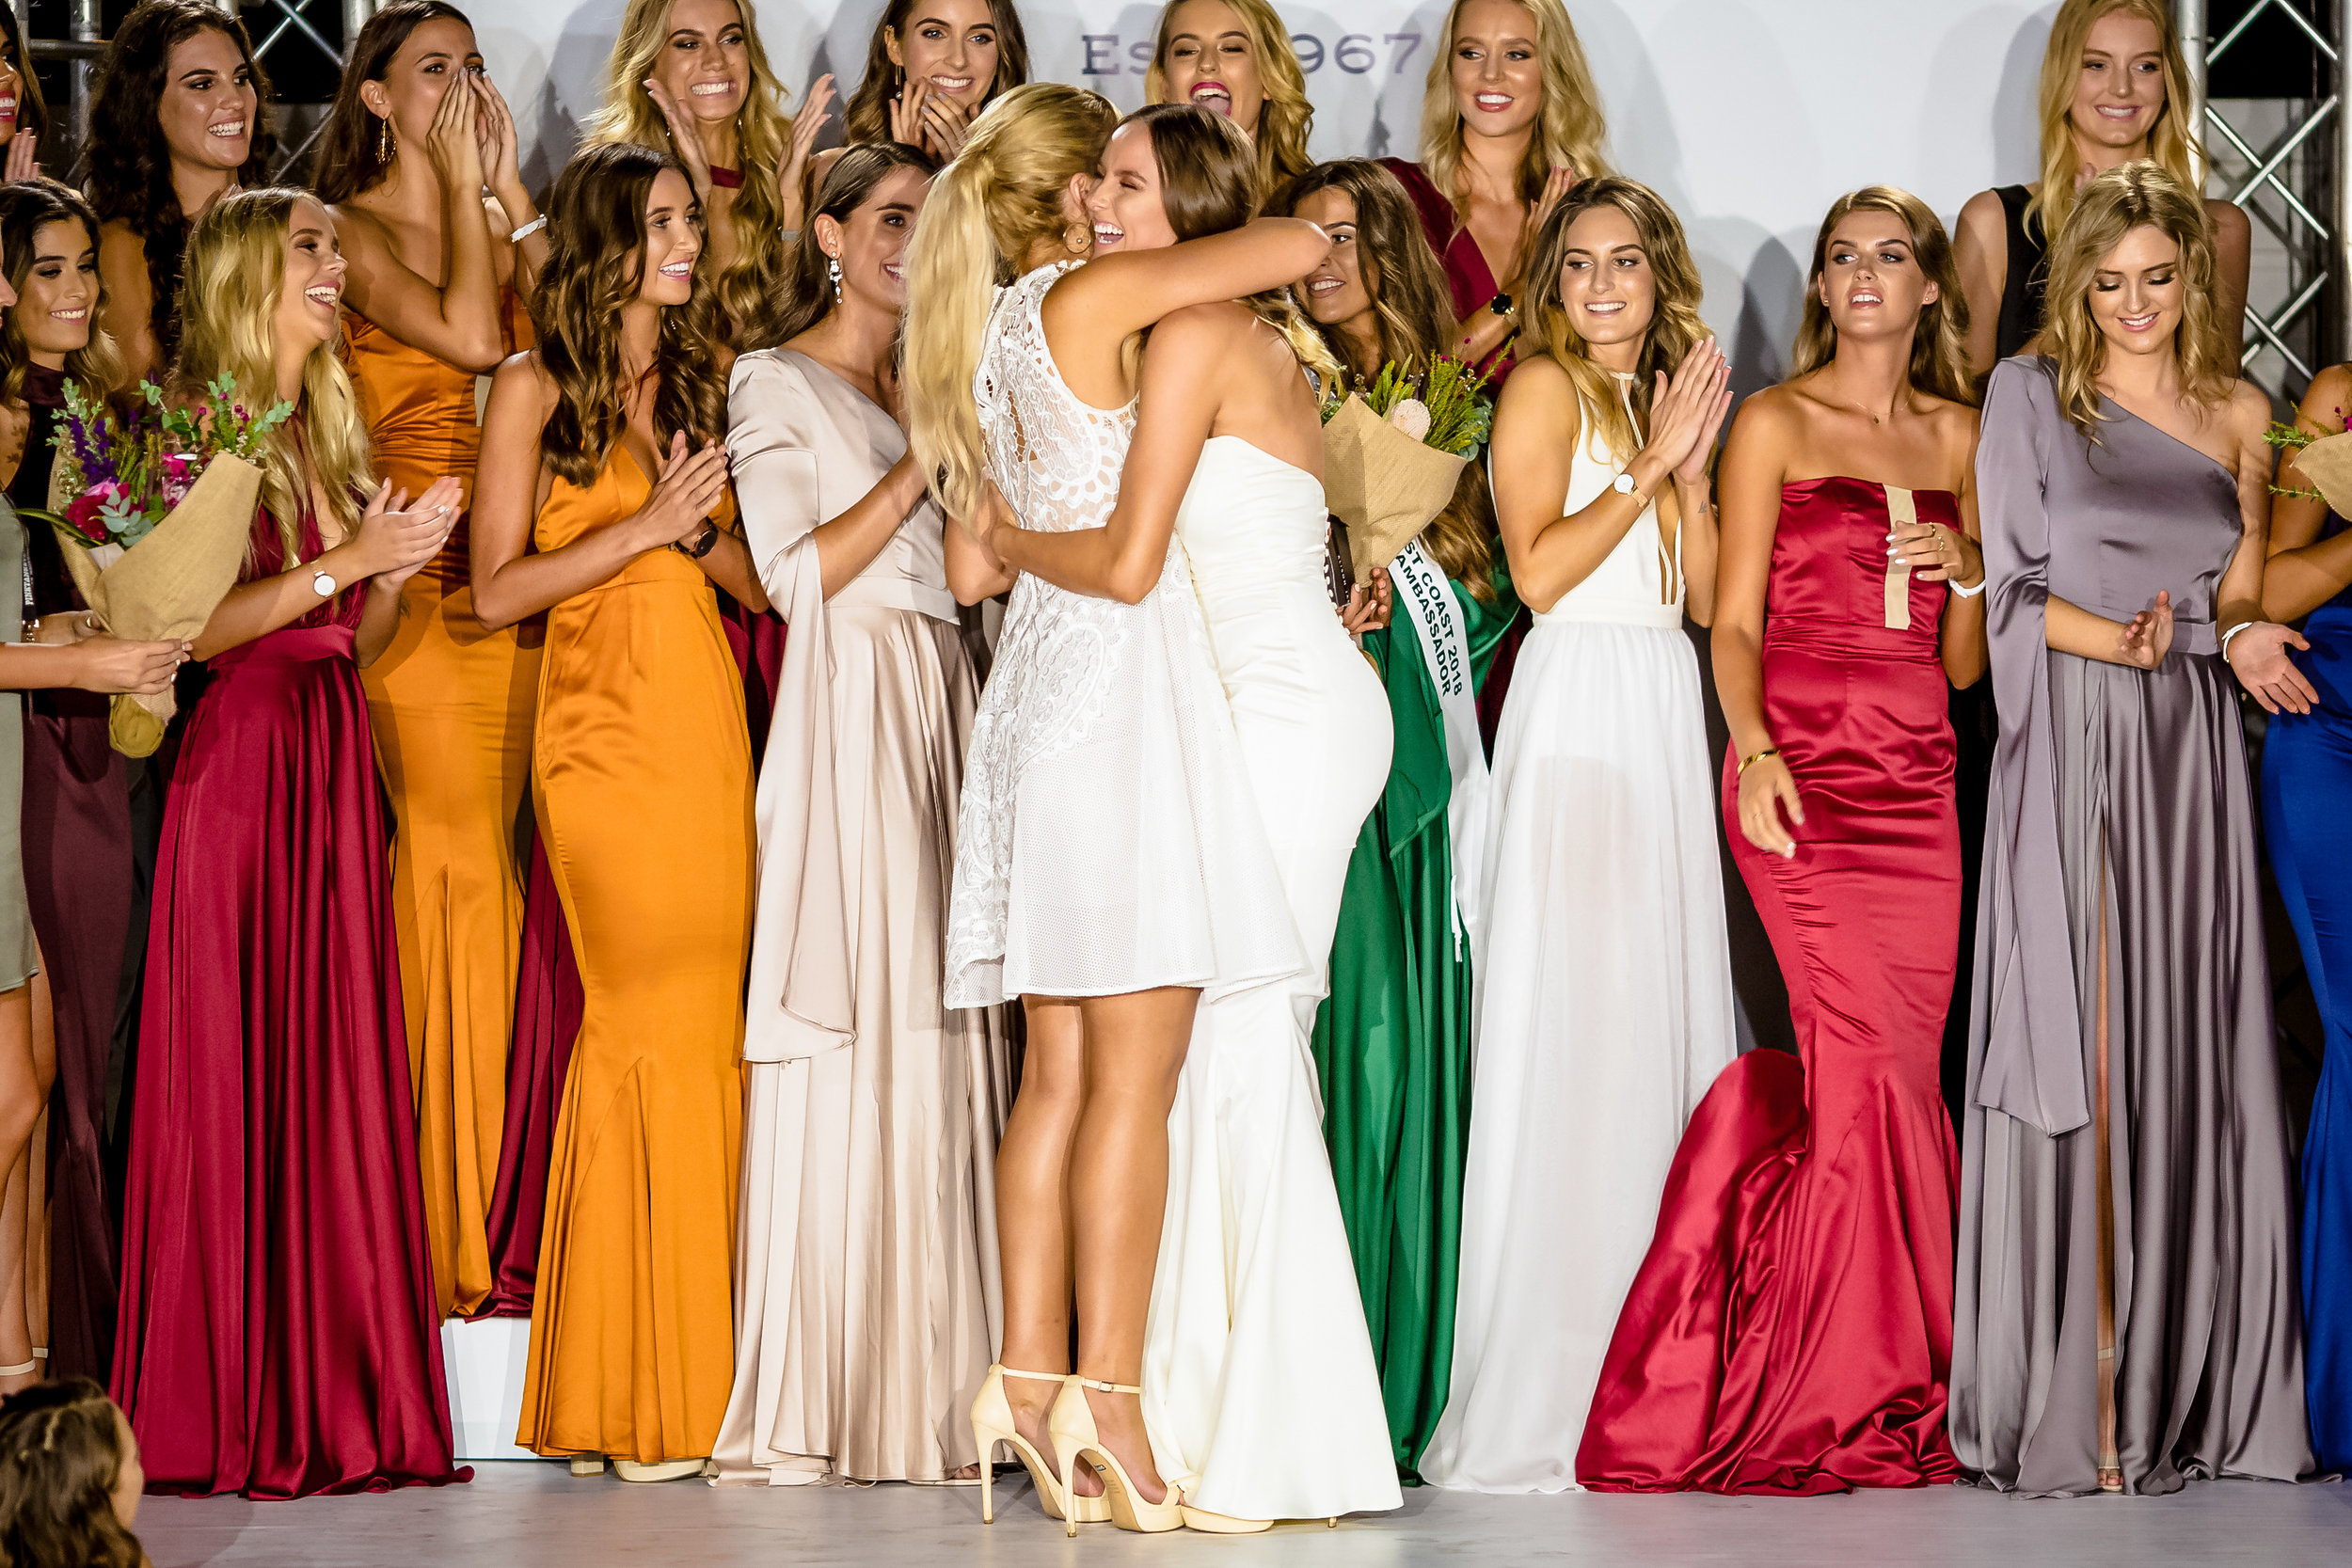 2018.04.06 MISS WEST COAST FINAL FULL ALBUM-249.jpg